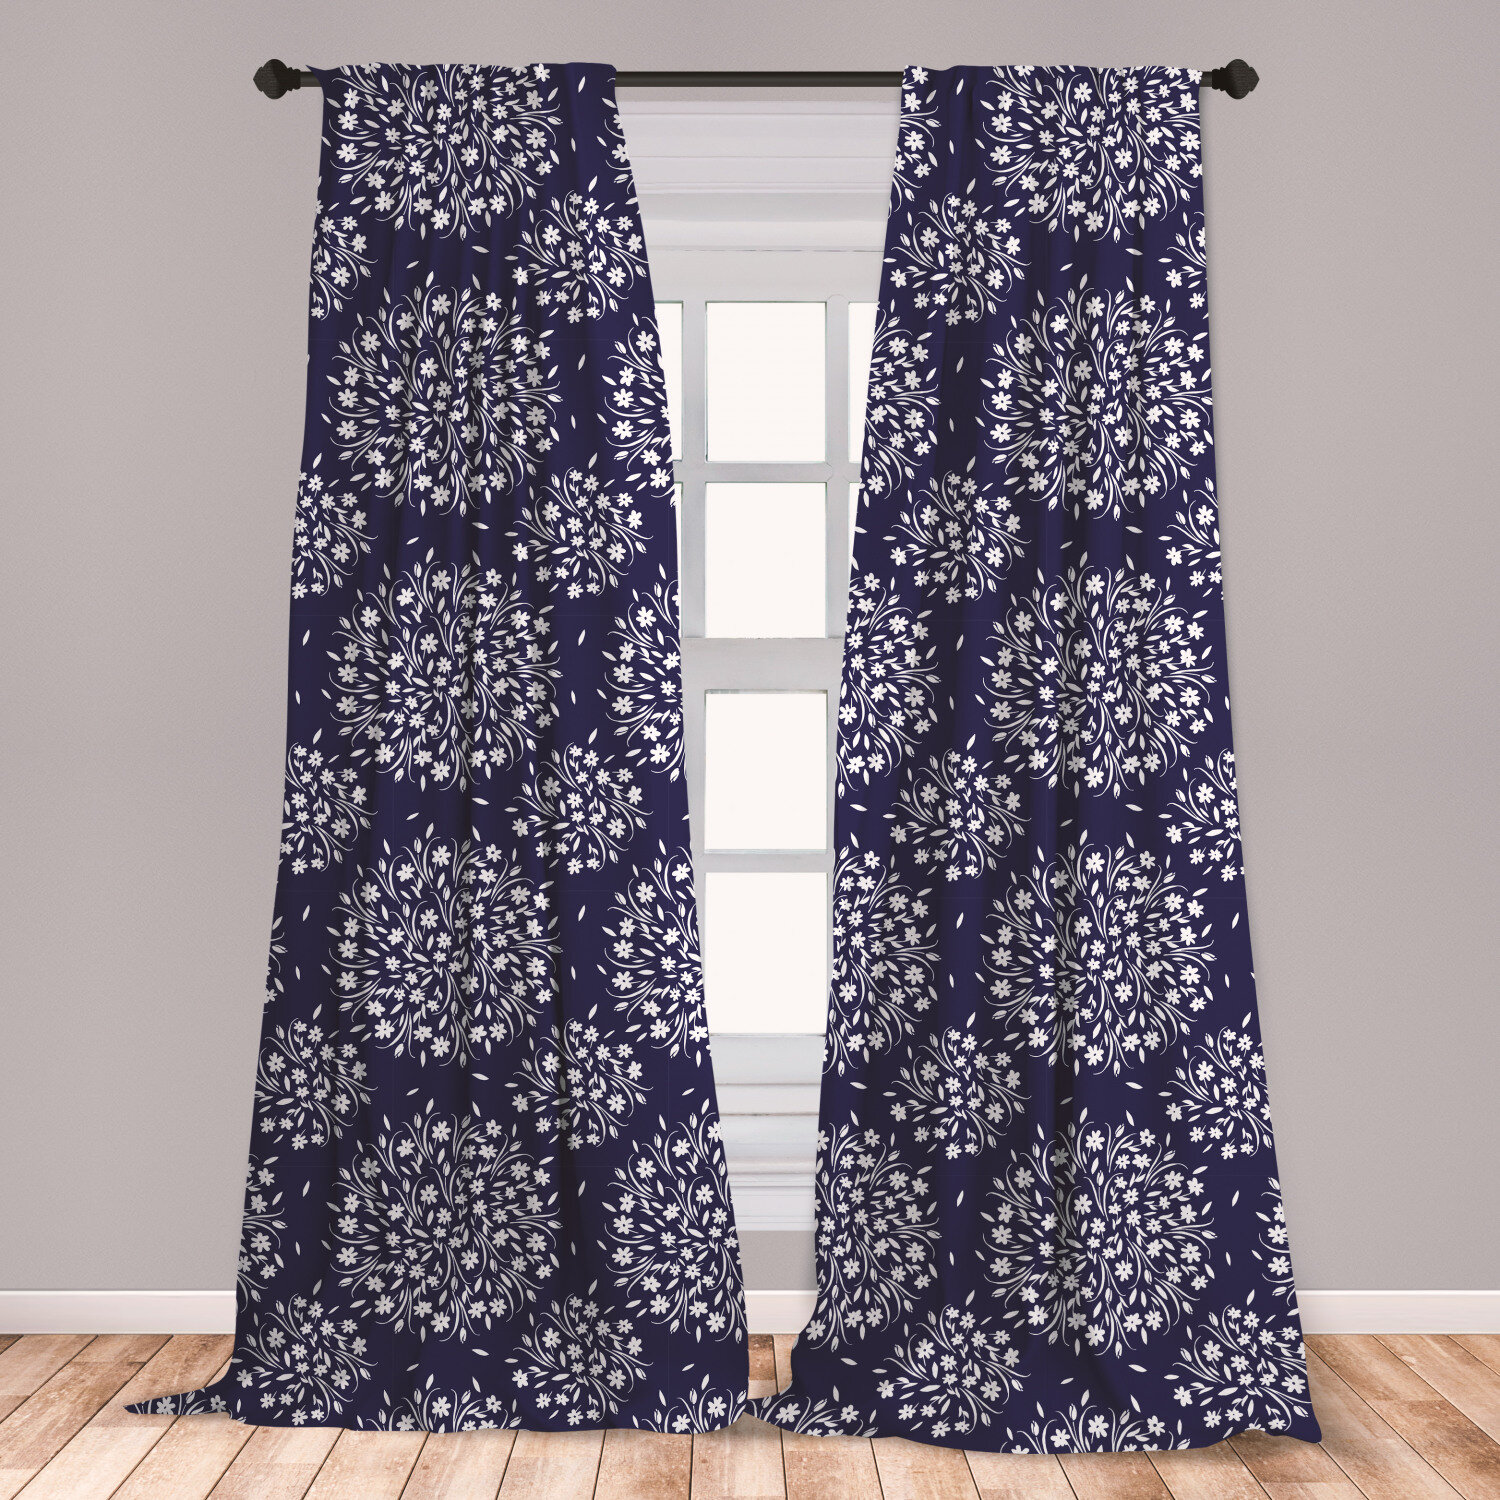 East Urban Home Ambesonne Navy And White Curtains Scroll Pattern With Little Rural Wildflowers And Buds Feminine Corsage Window Treatments 2 Panel Set For Living Room Bedroom Decor 56 X 63 Indigo White